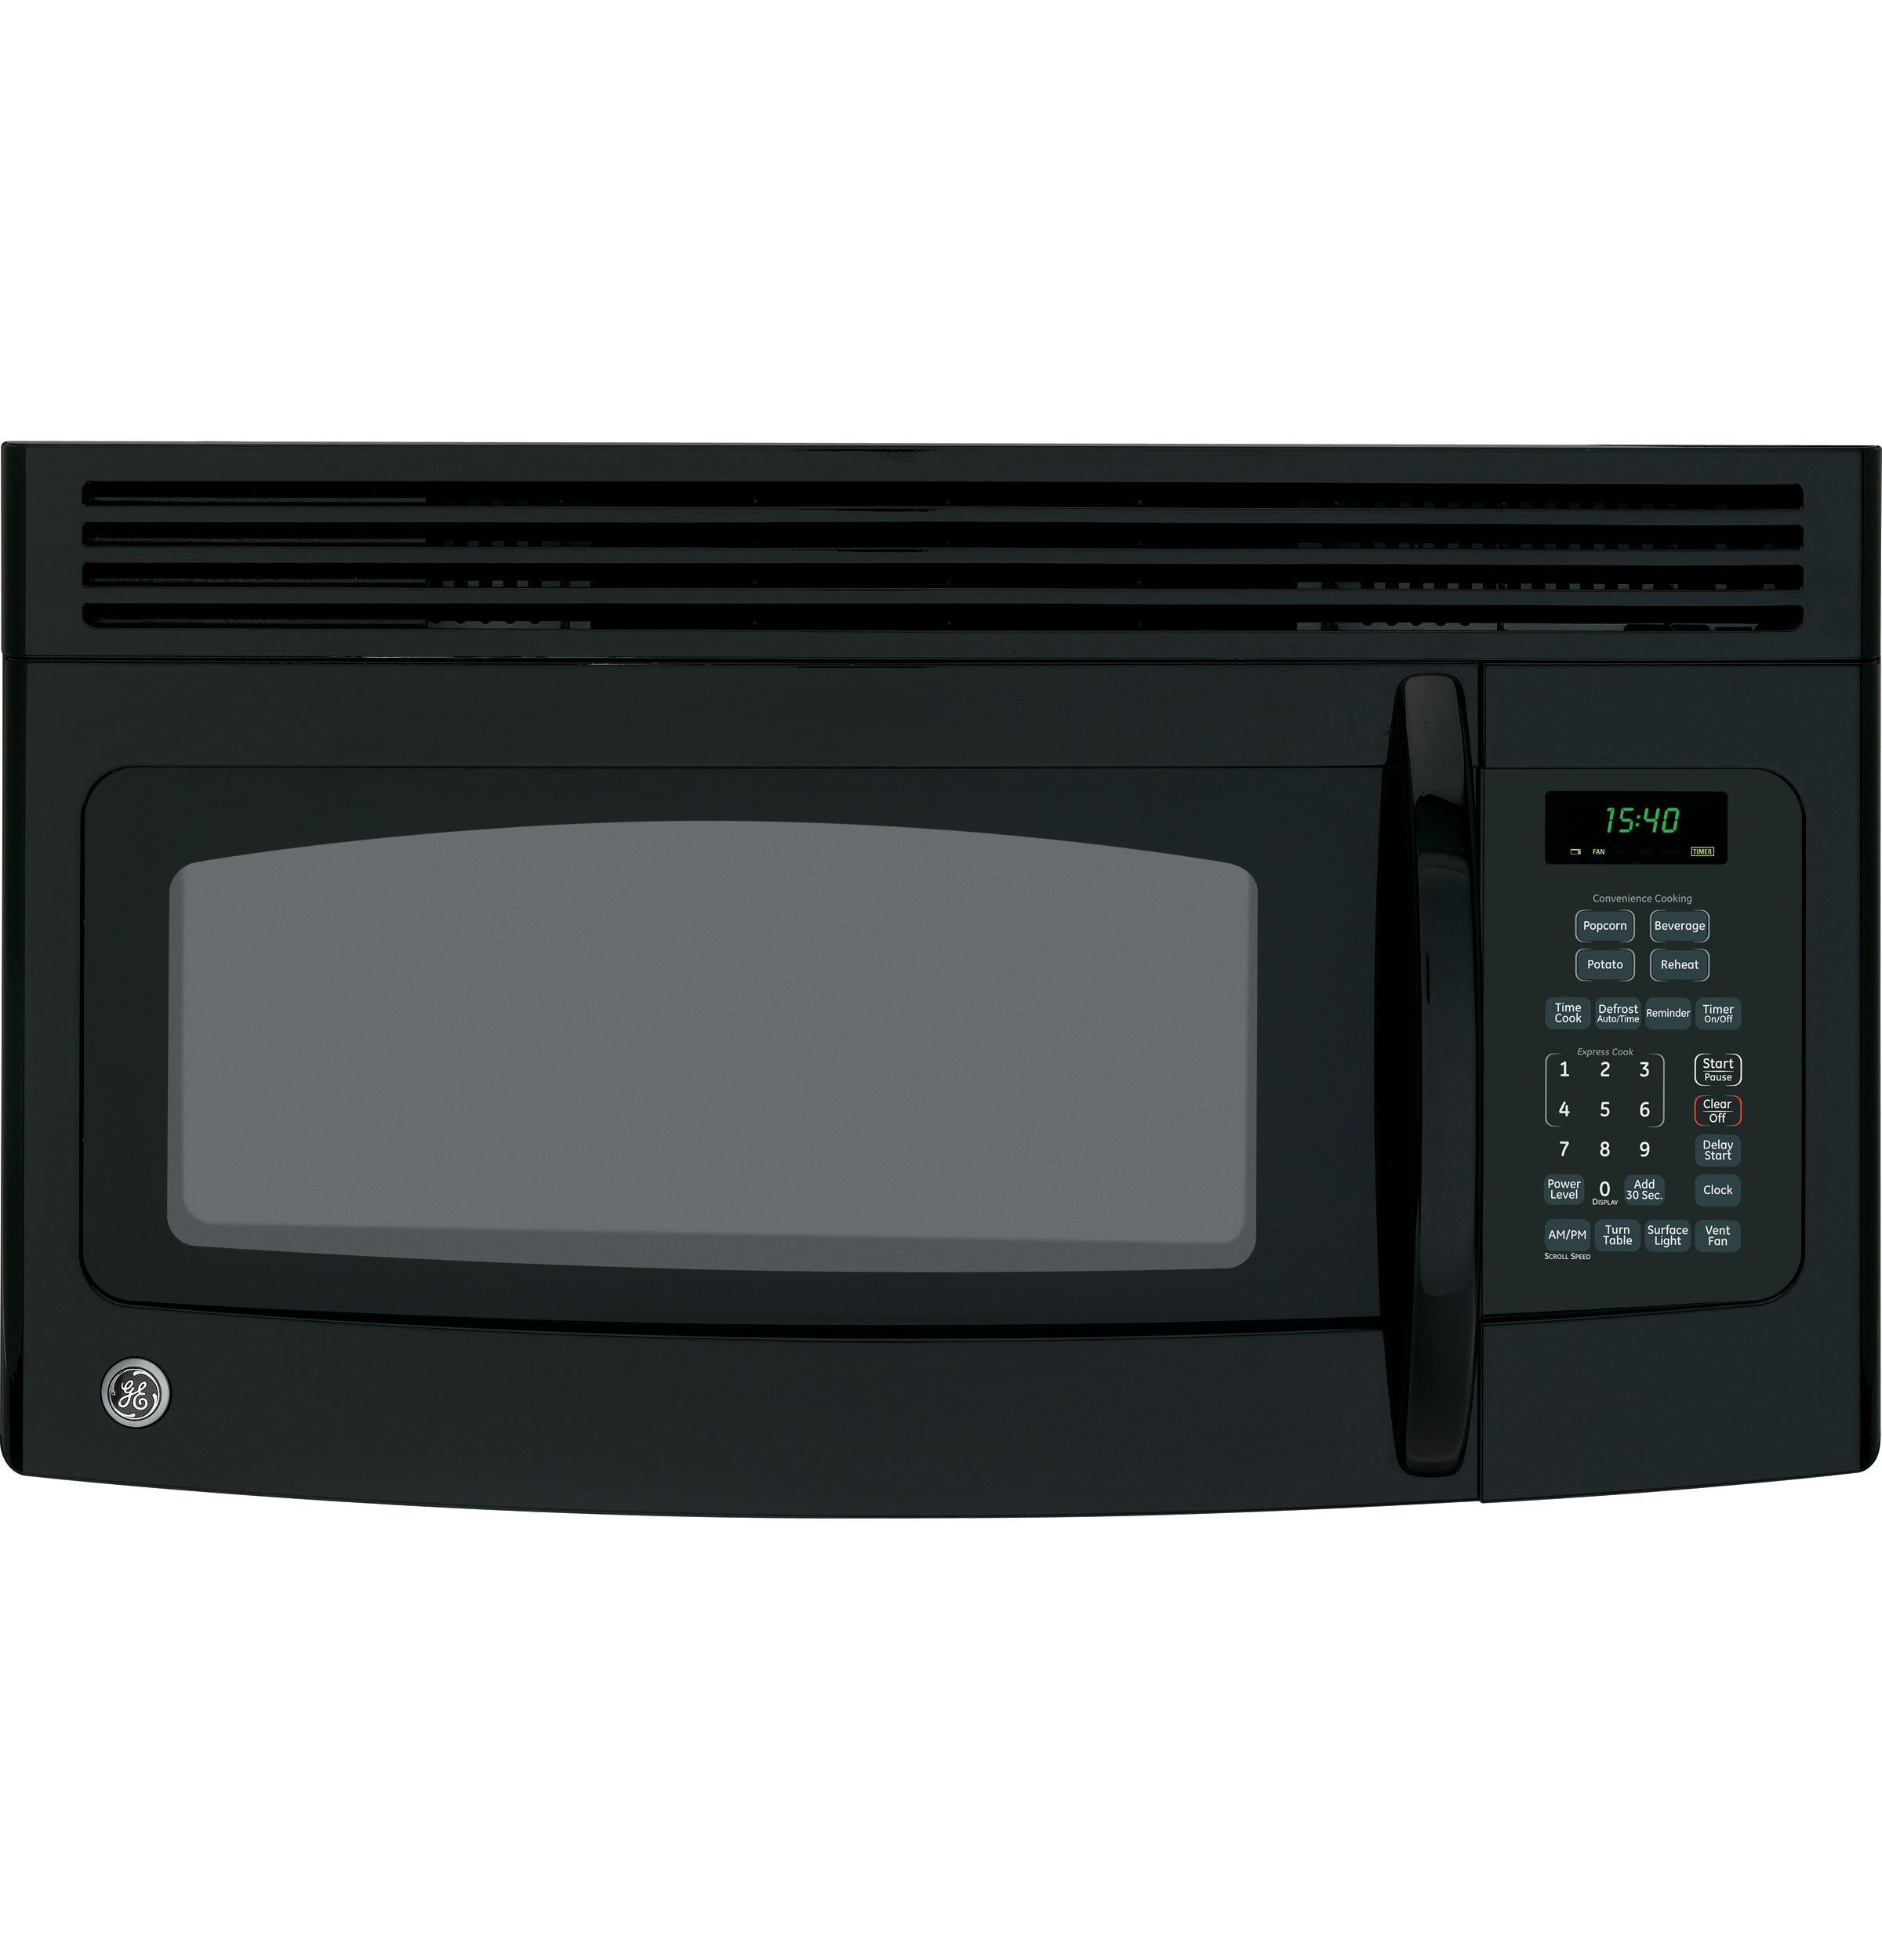 Over The Range Microwave Ovens: GE Spacemaker® Over-the-Range Microwave Oven